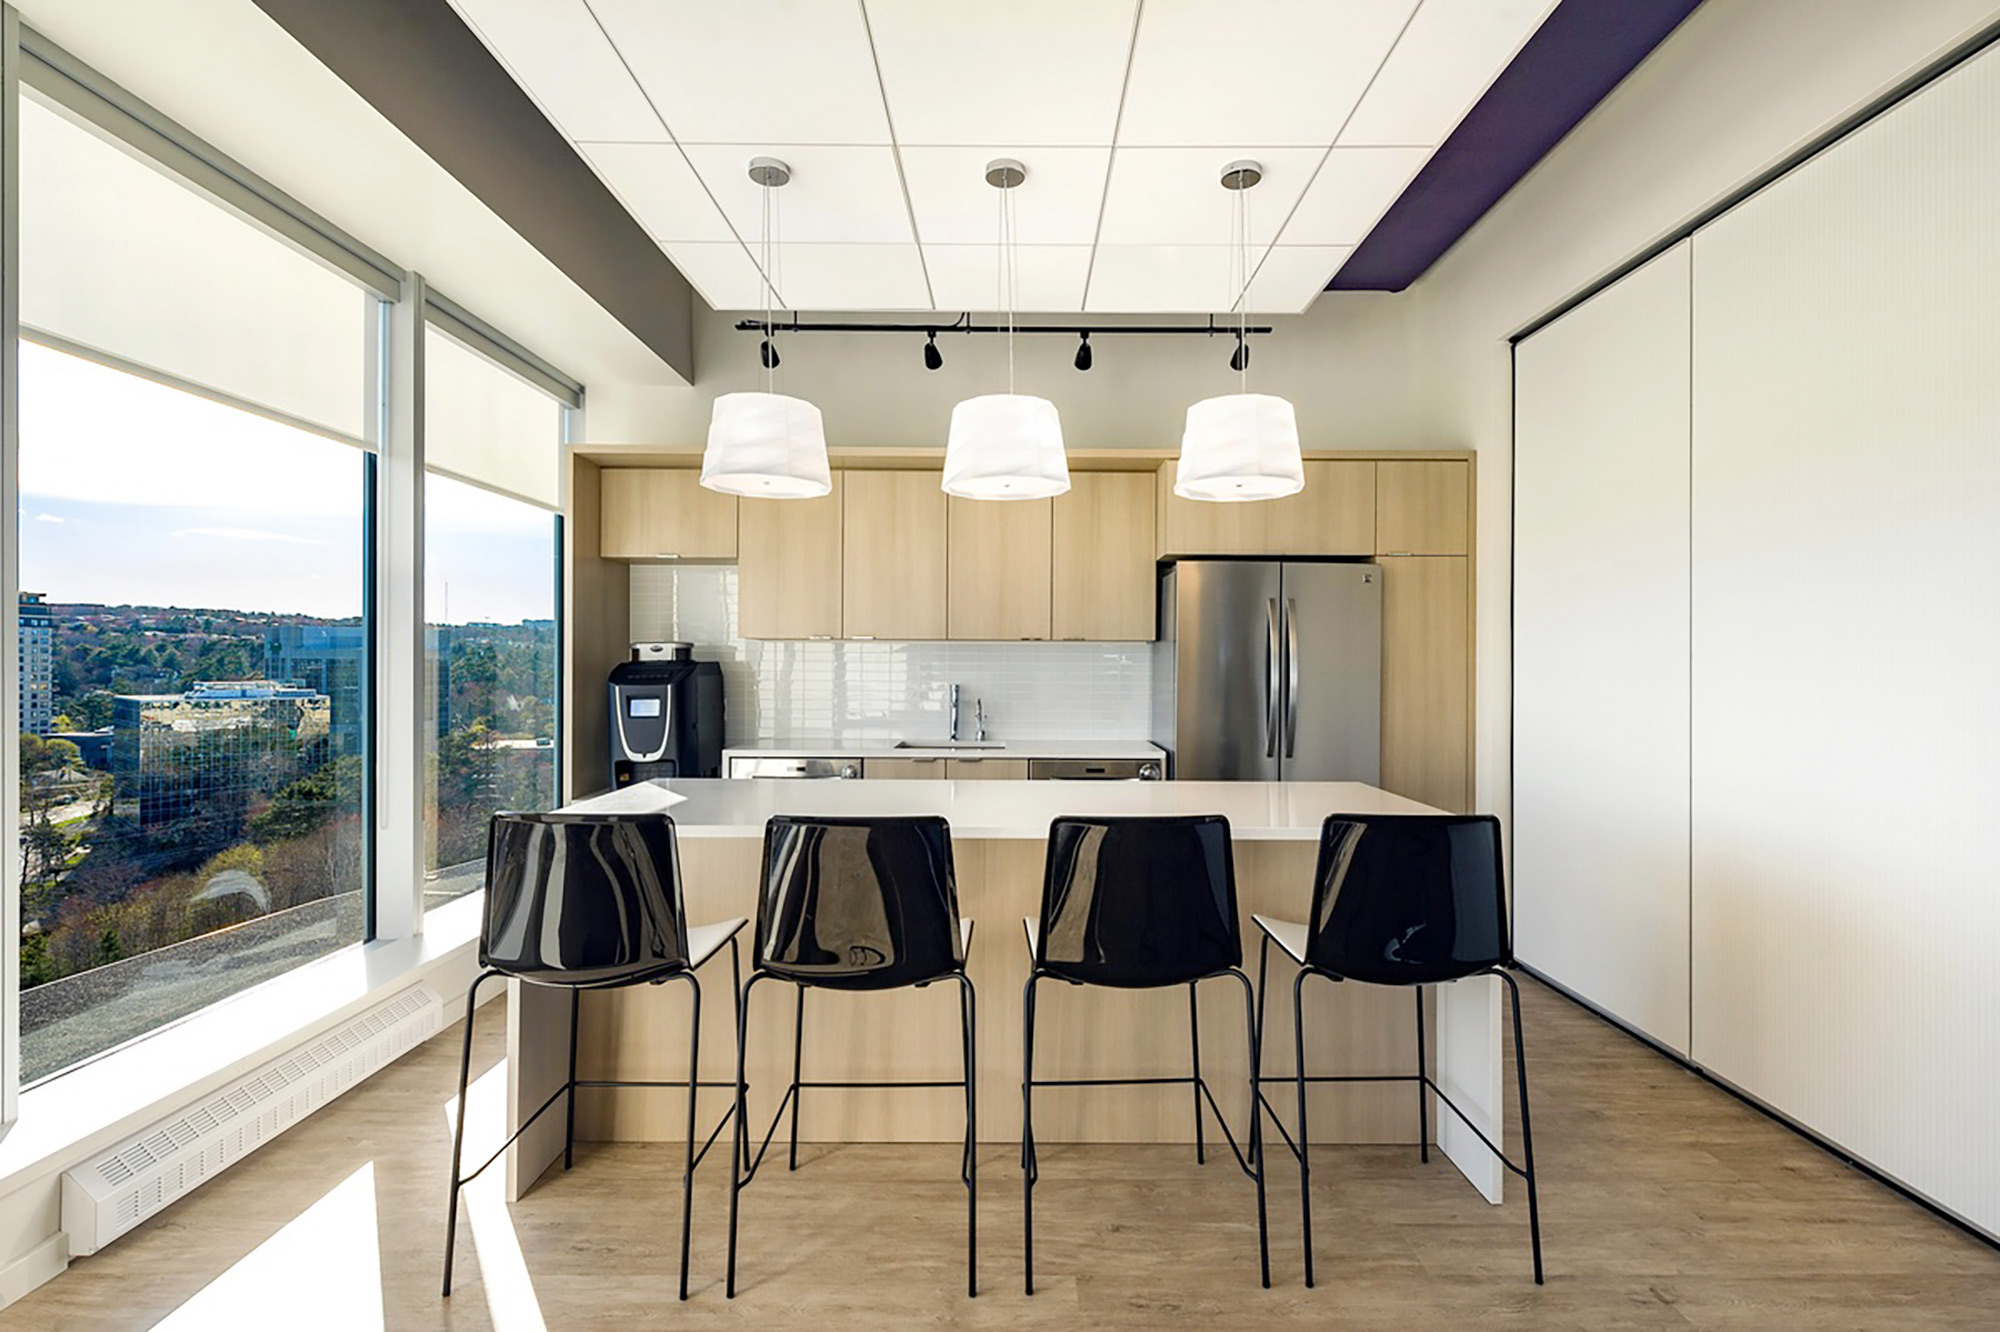 interior-design-financial-office-kitchen.jpg